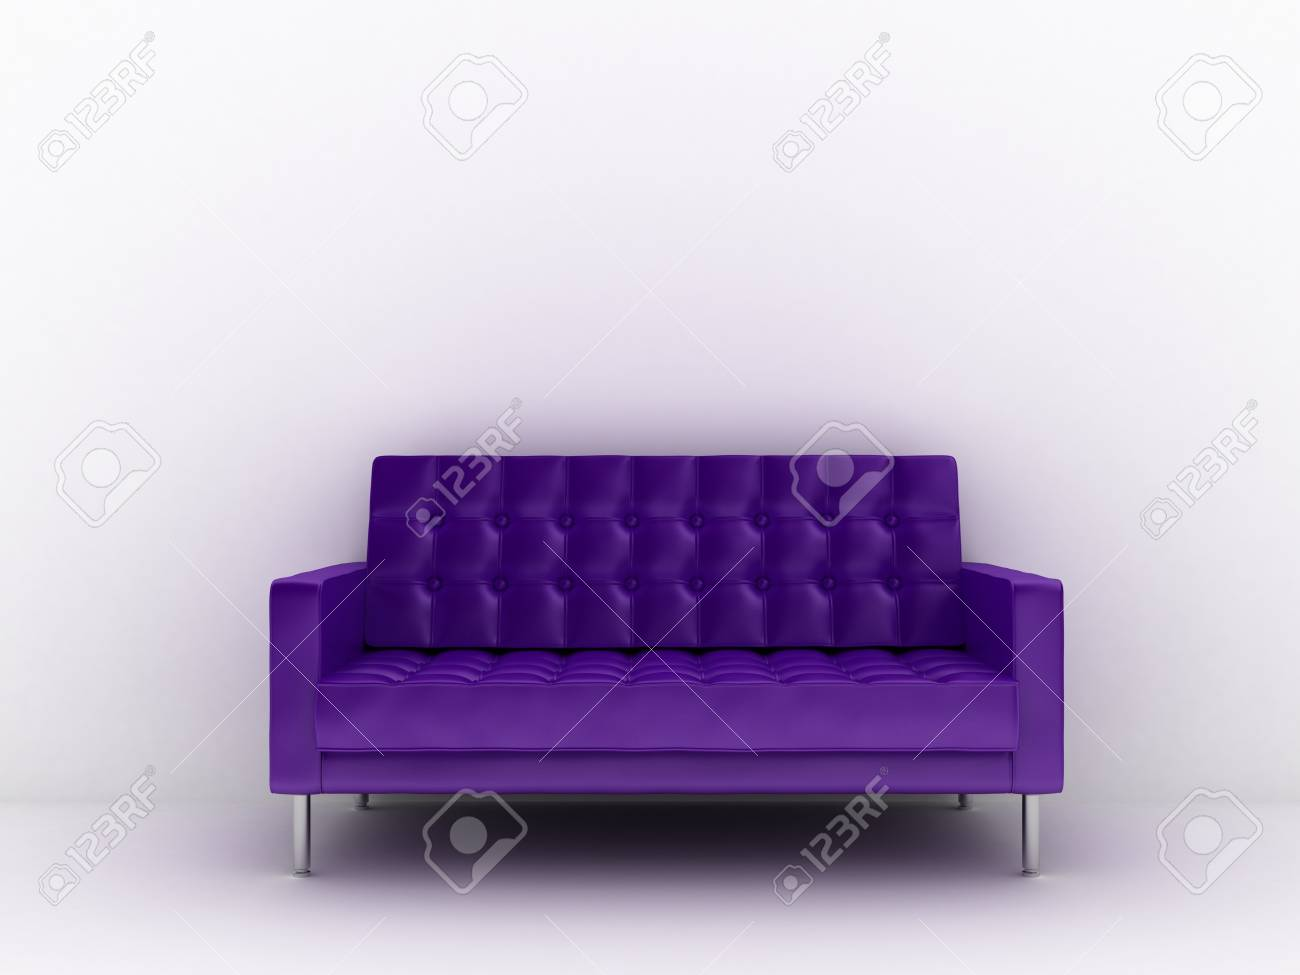 Full Size of Sofa Lila Lilac Throws Bed Lilah Ikea Chair Corner Samt Queen Sleeper Chesterfield Set Emerald Craft 3 Piece Suite Salon Raymour And Flanigan Uk Living Room Sofa Sofa Lila